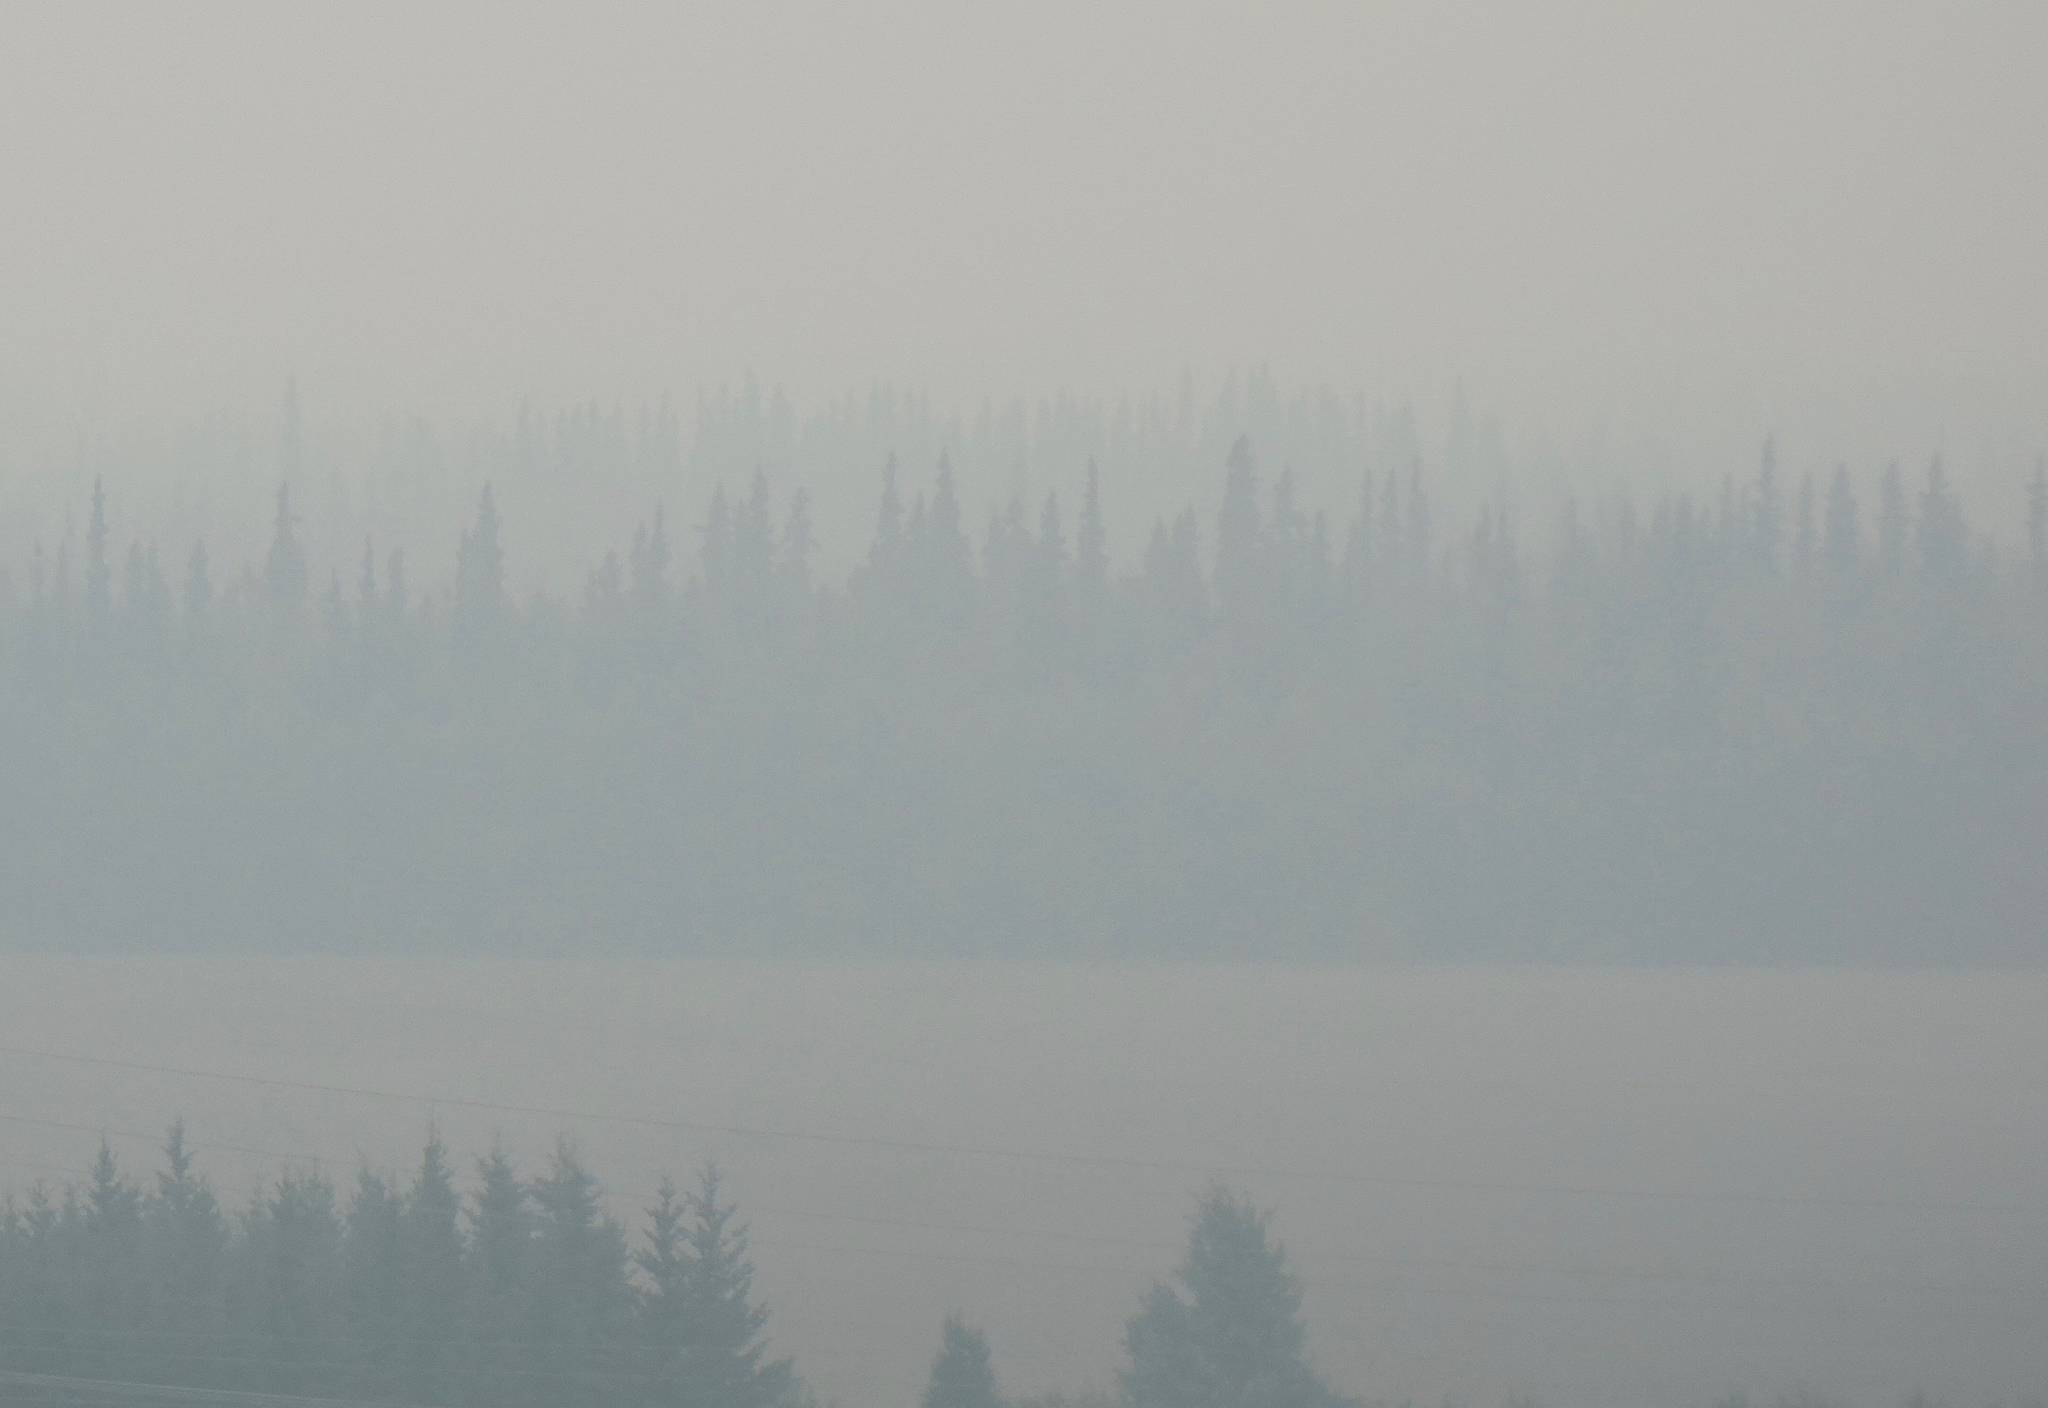 Fairbanks, shown here in July 2019, and other areas of Alaska are smokier, due to a recent increase in summer wildfires. (Courtesy Photo | Ned Rozell)